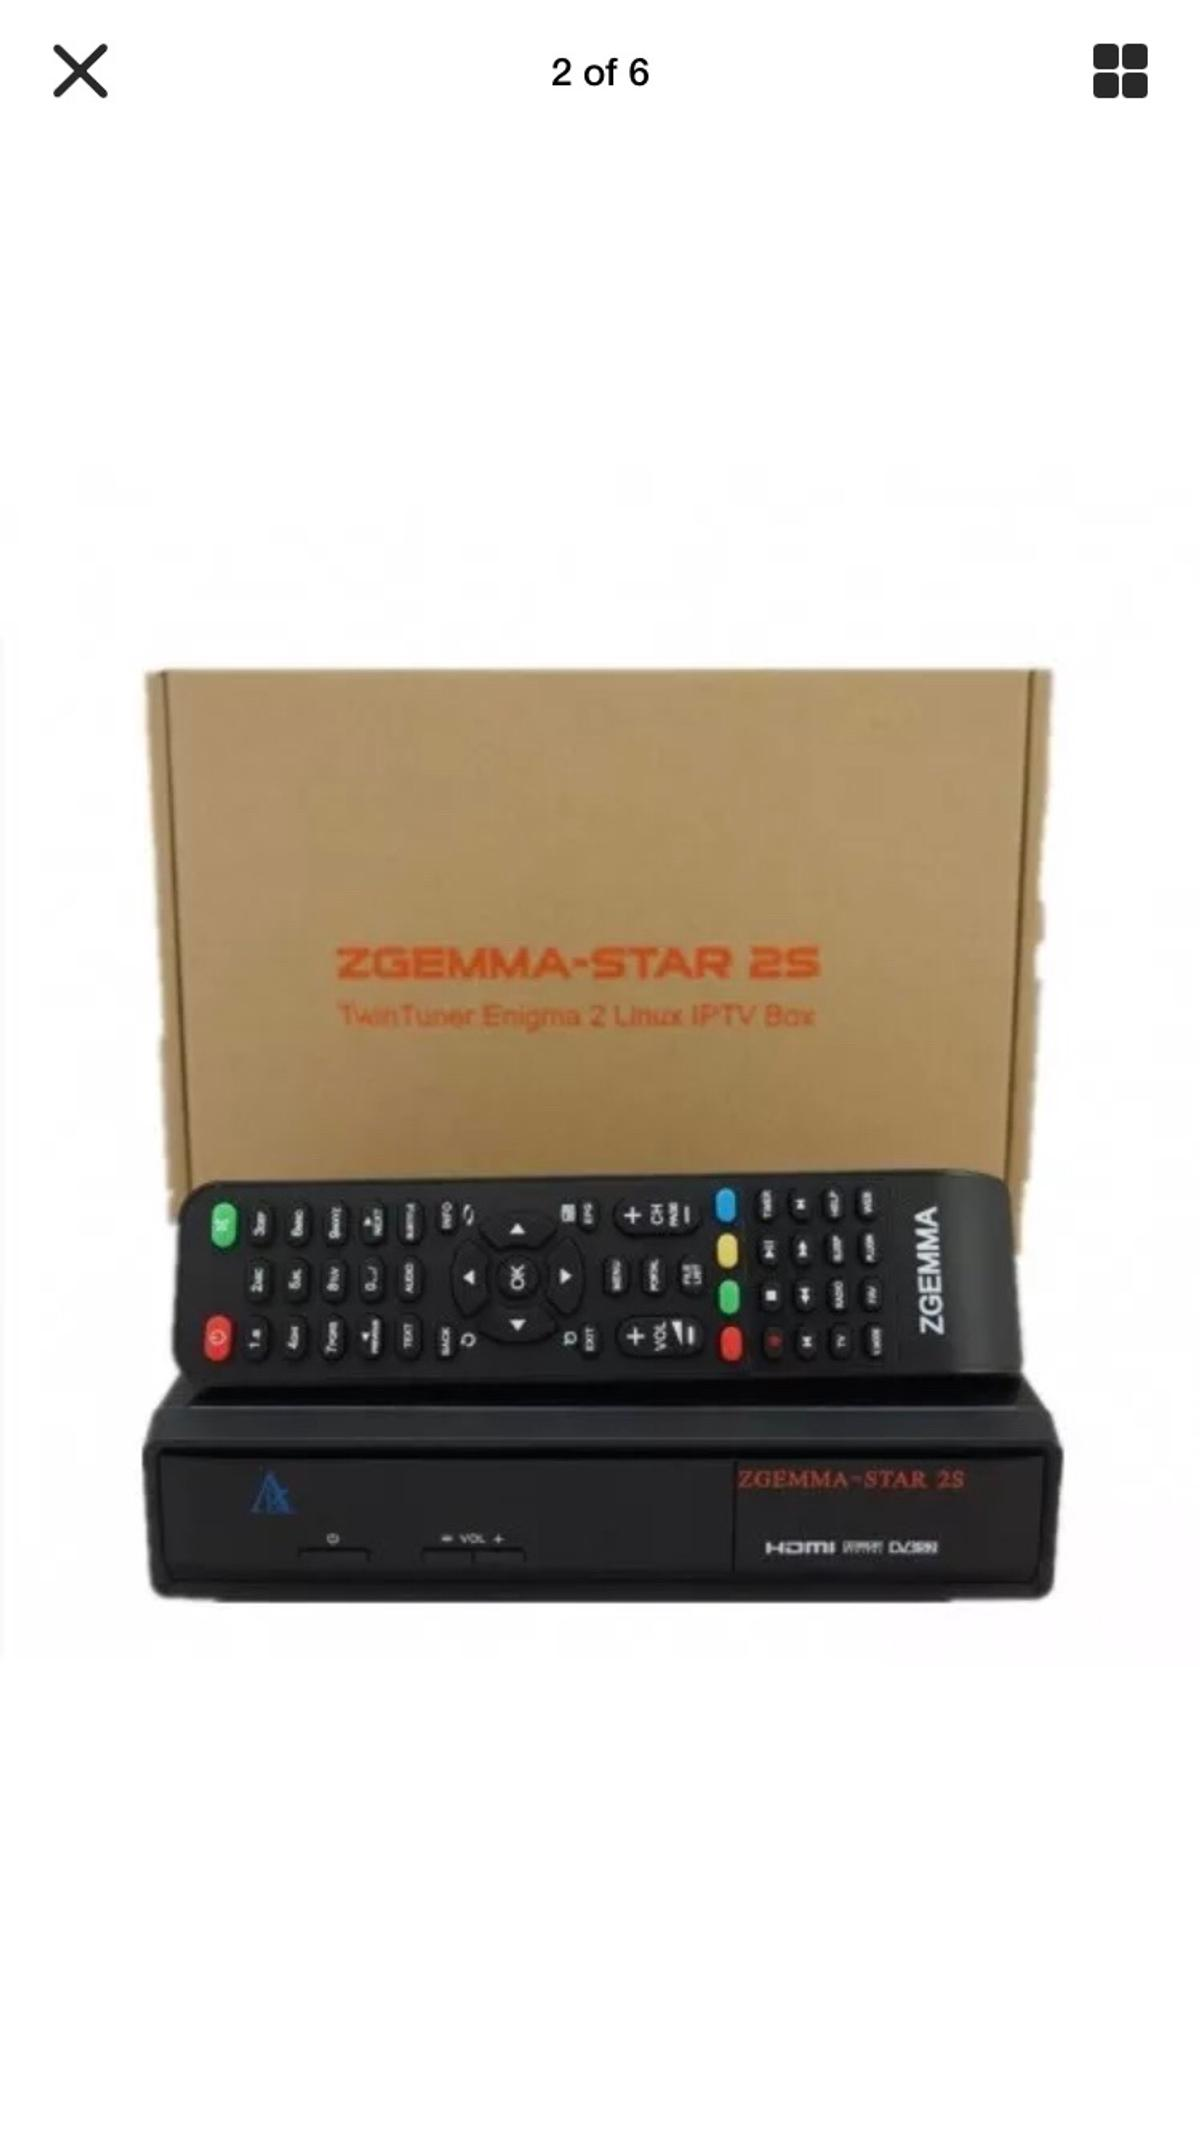 Brand new Zgemma Star S2 Satellite Receiver